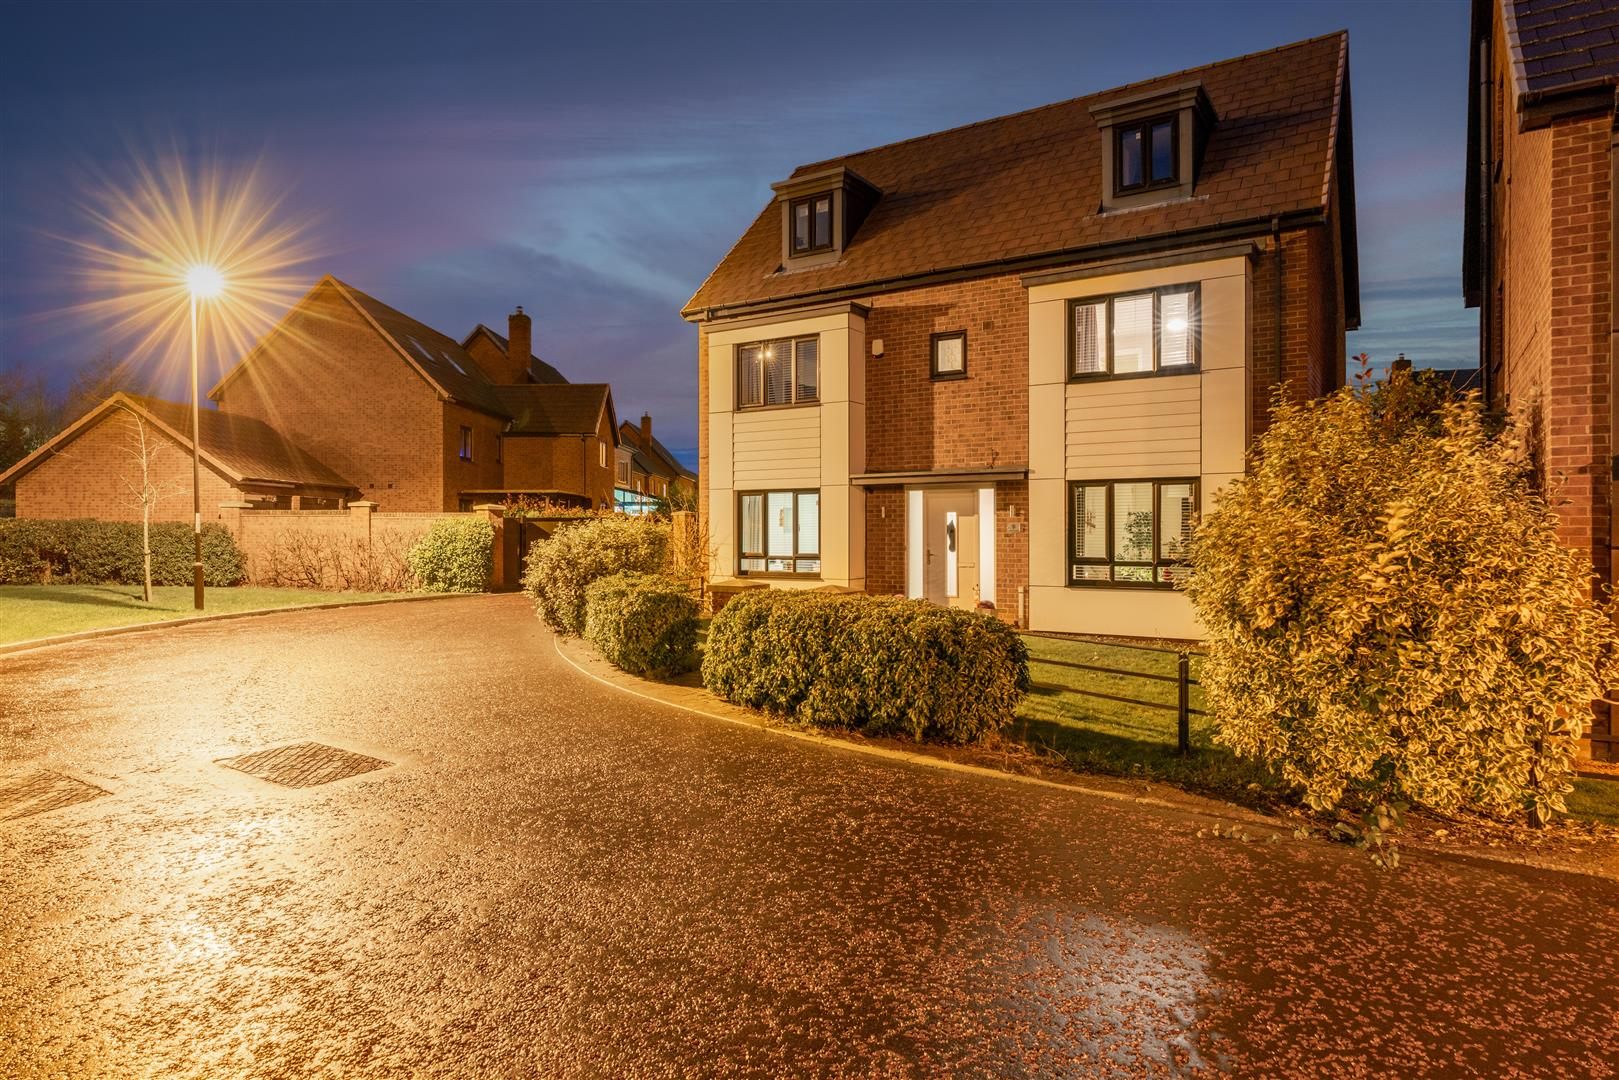 5 bed detached house for sale in Newcastle Upon Tyne, NE13 9AY - Property Image 1